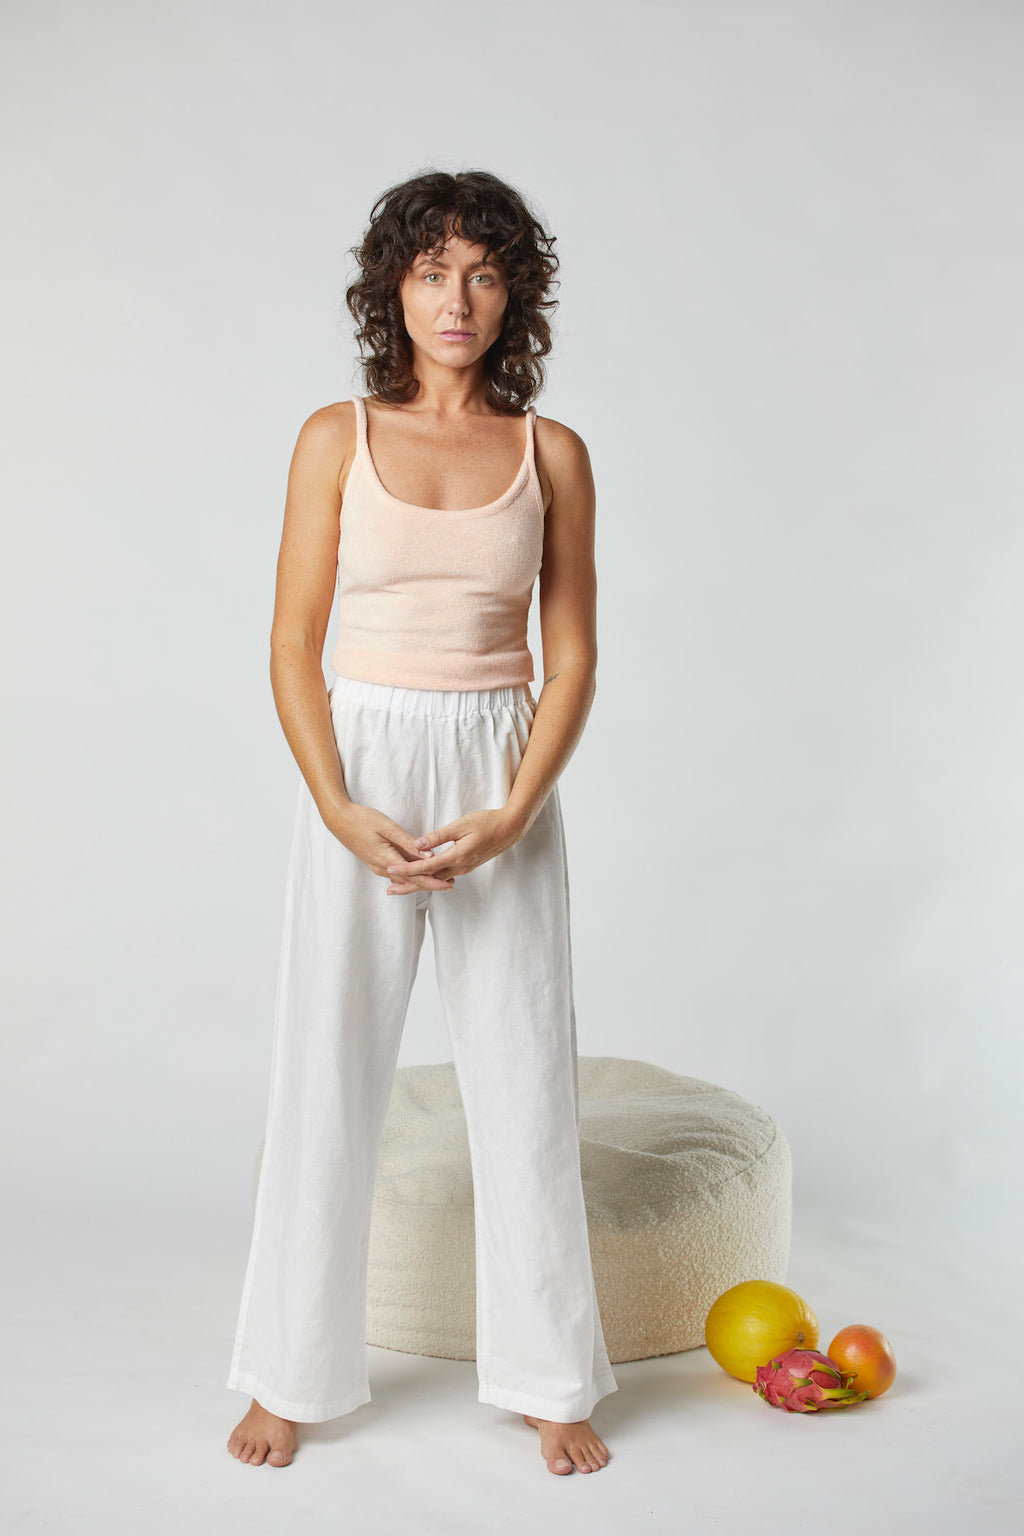 Terry Kirby Singlet Top - Apricot